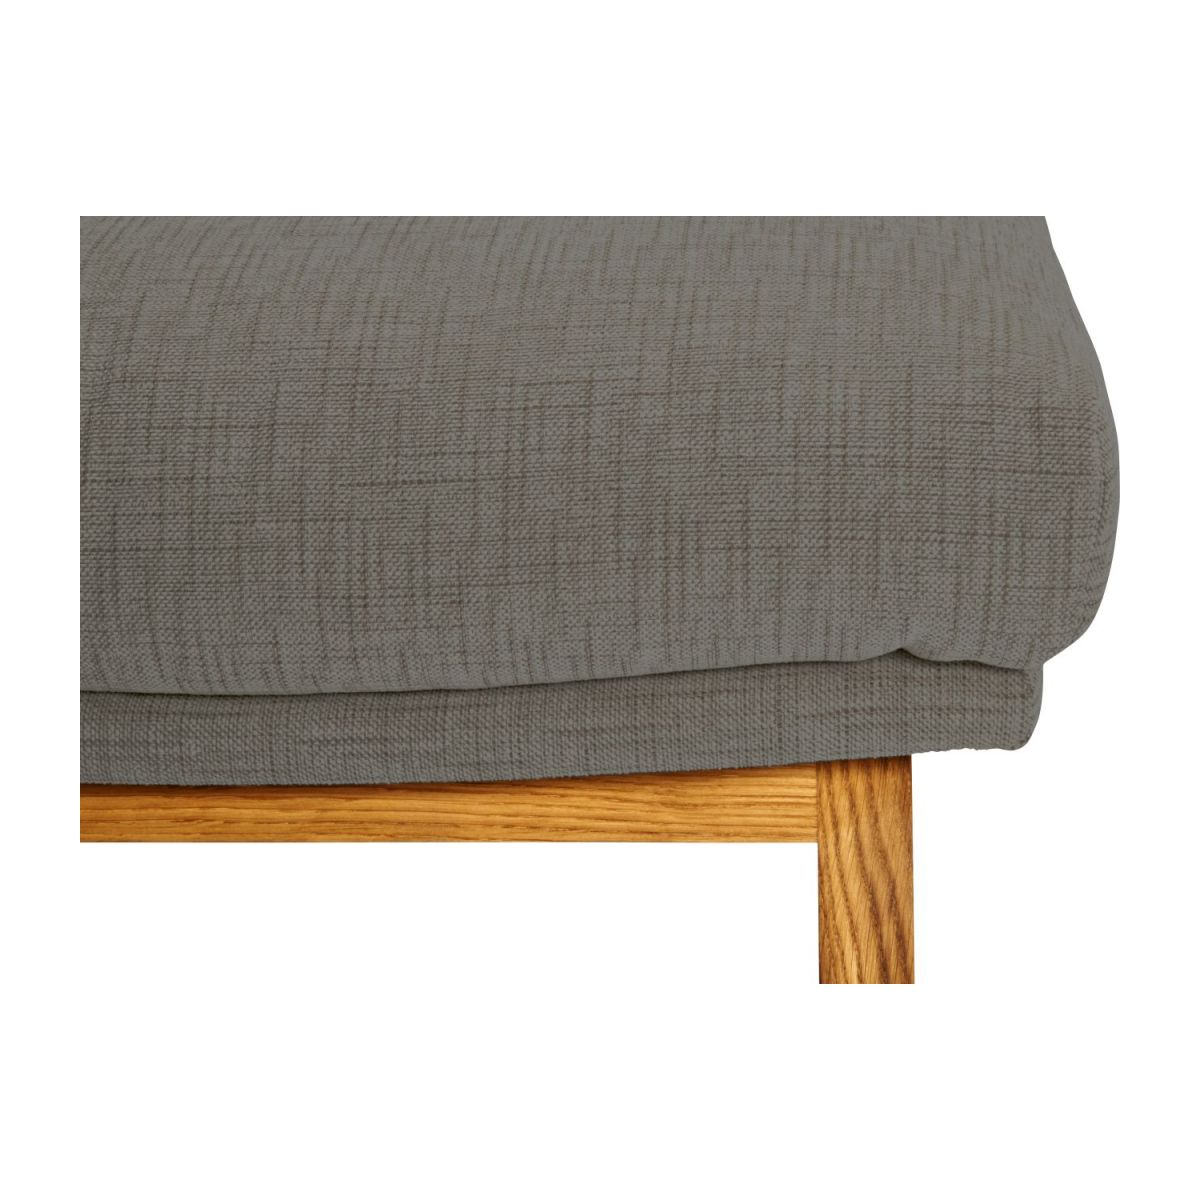 Footstool in Ancio fabric, river rock with oak legs n°6